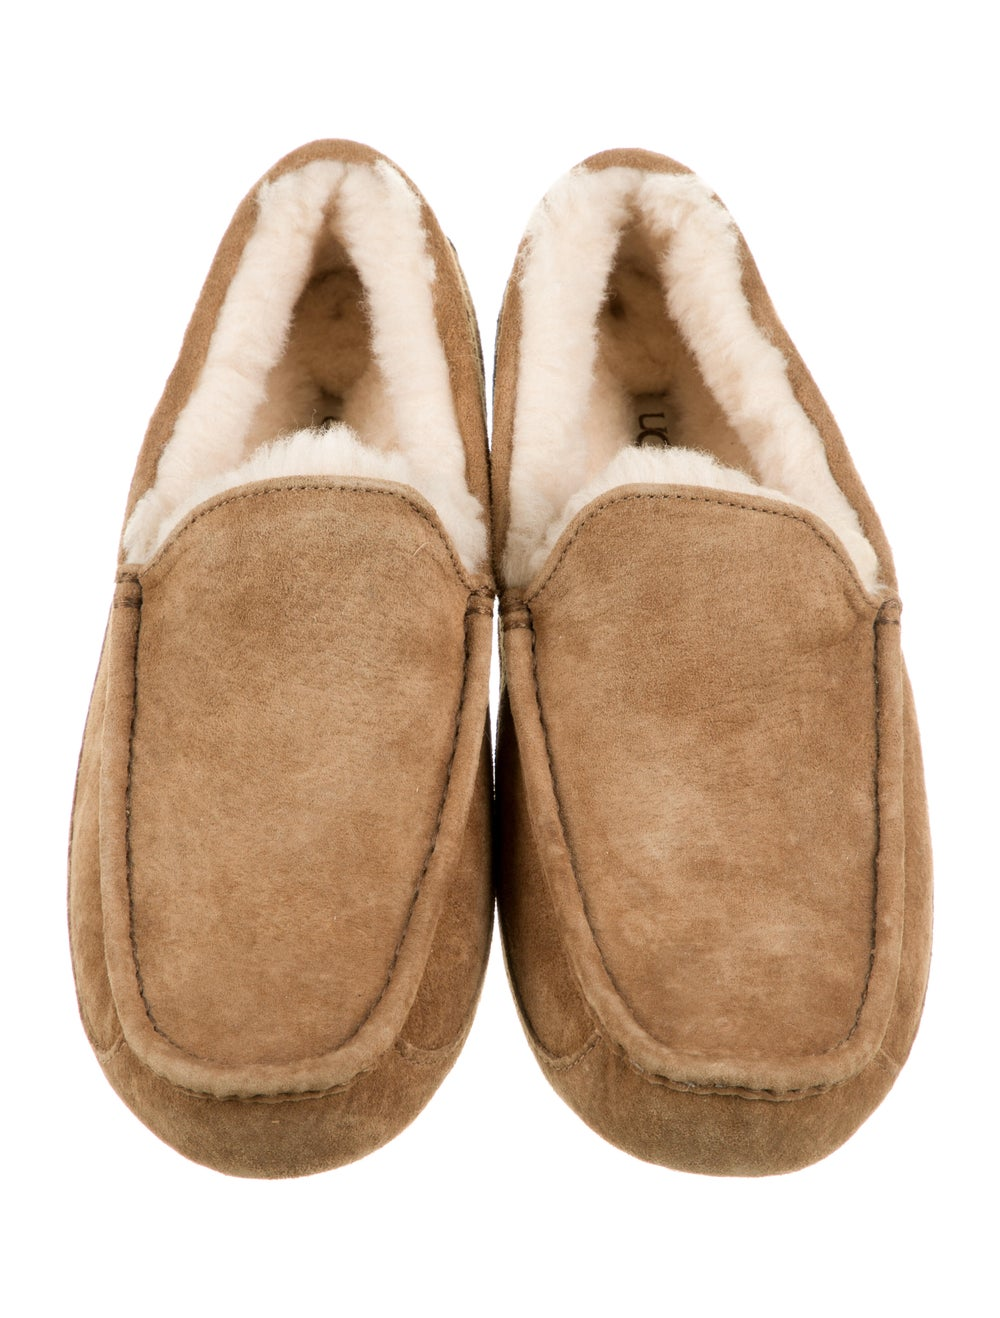 UGG Suede Slippers - image 3